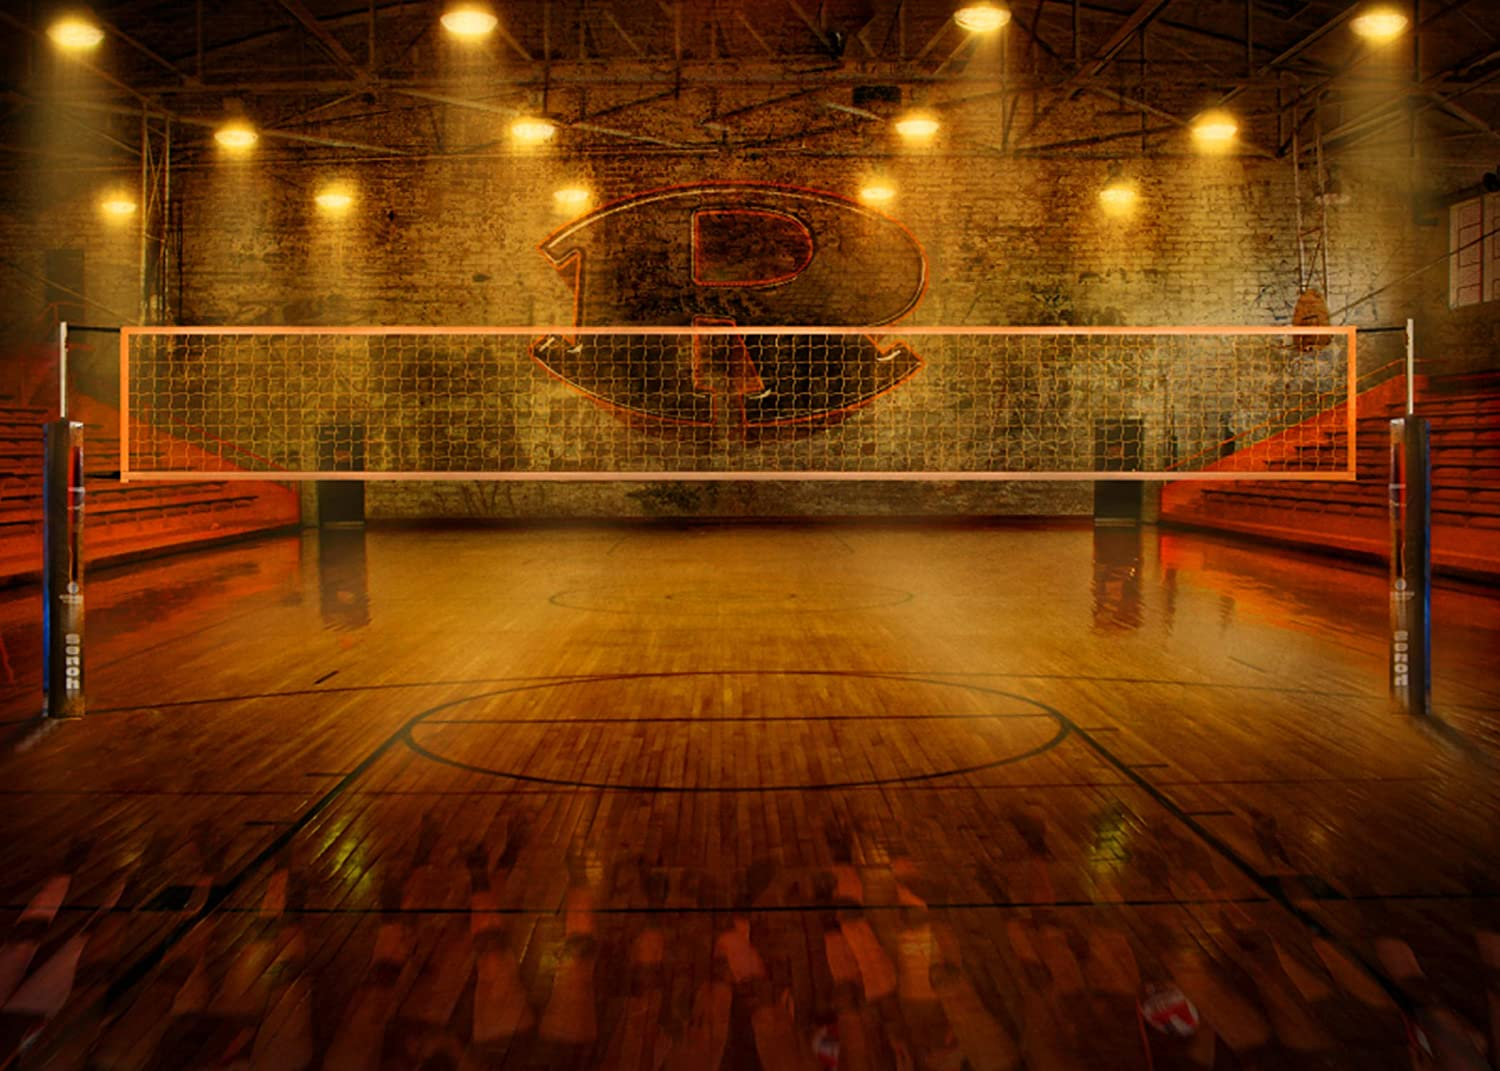 LYLYCTY 7x5ft Match Game Background Retro Style Tennis Court Photo Backdrop Studio Booth Kids Party LYLS1226